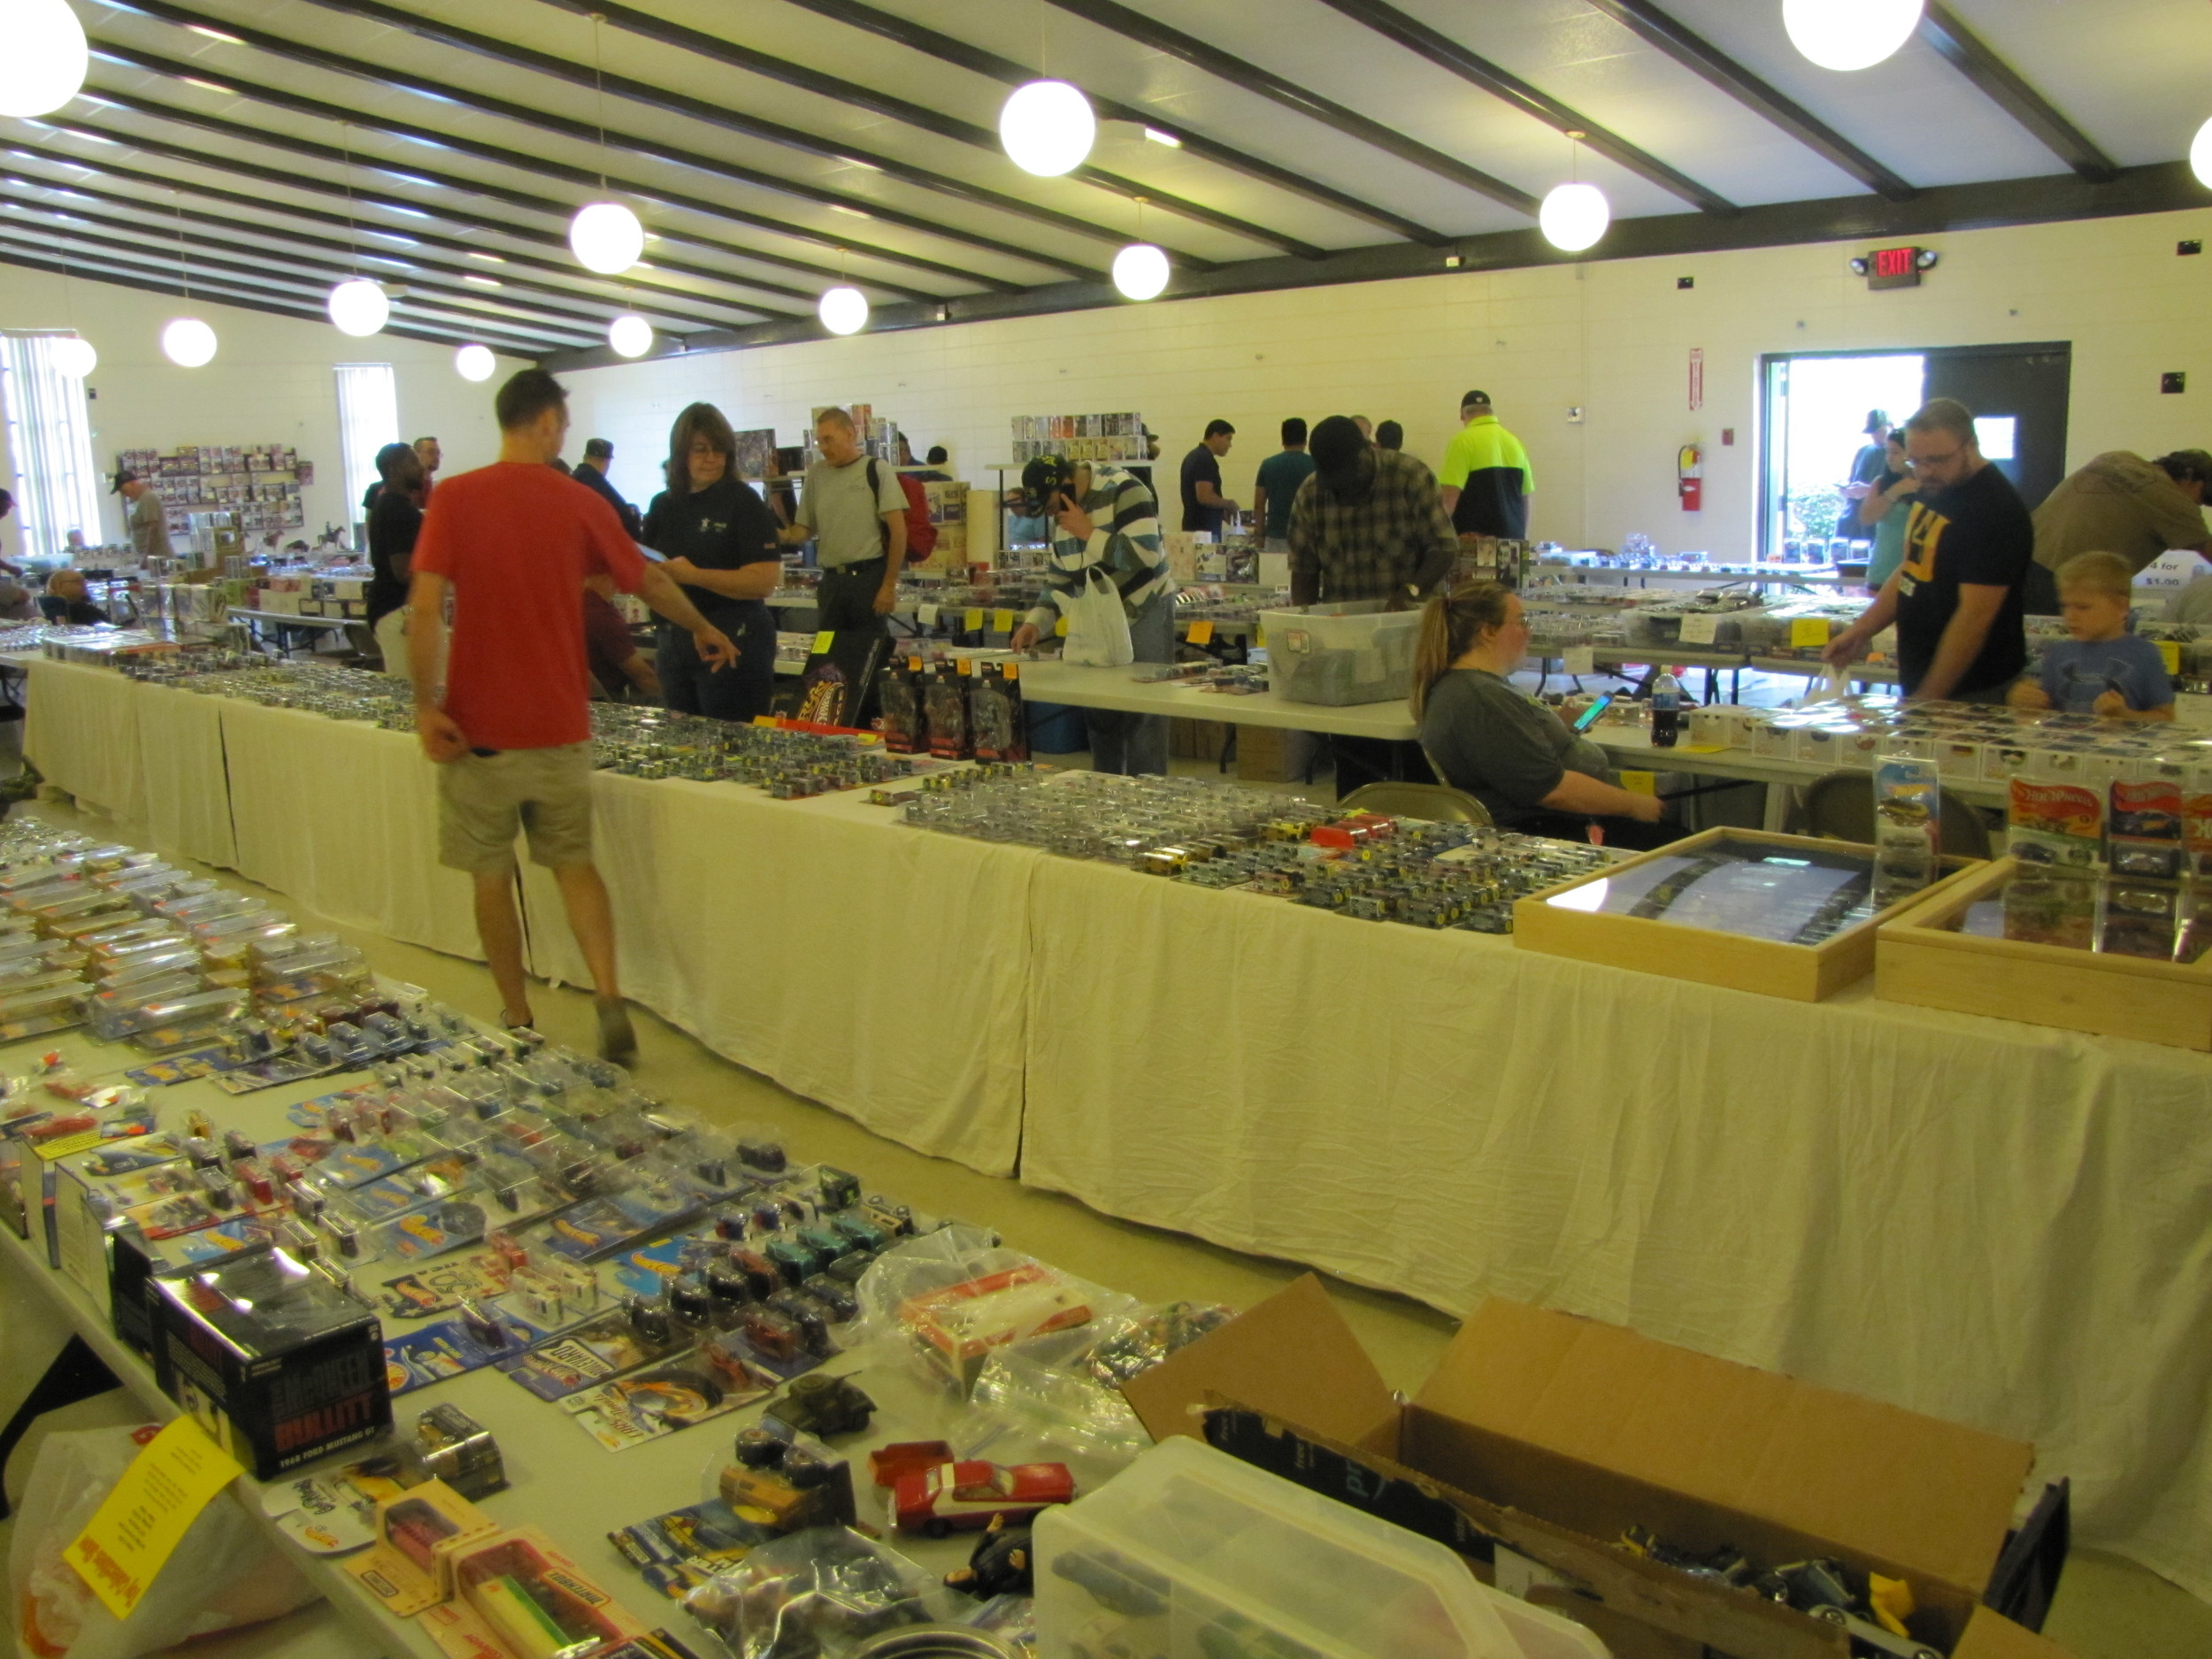 Promoter Jeff Powell said about 300 people attended Saturday's North Georgia Dixie Diecast and Toy Collectibles event in Cartersville.